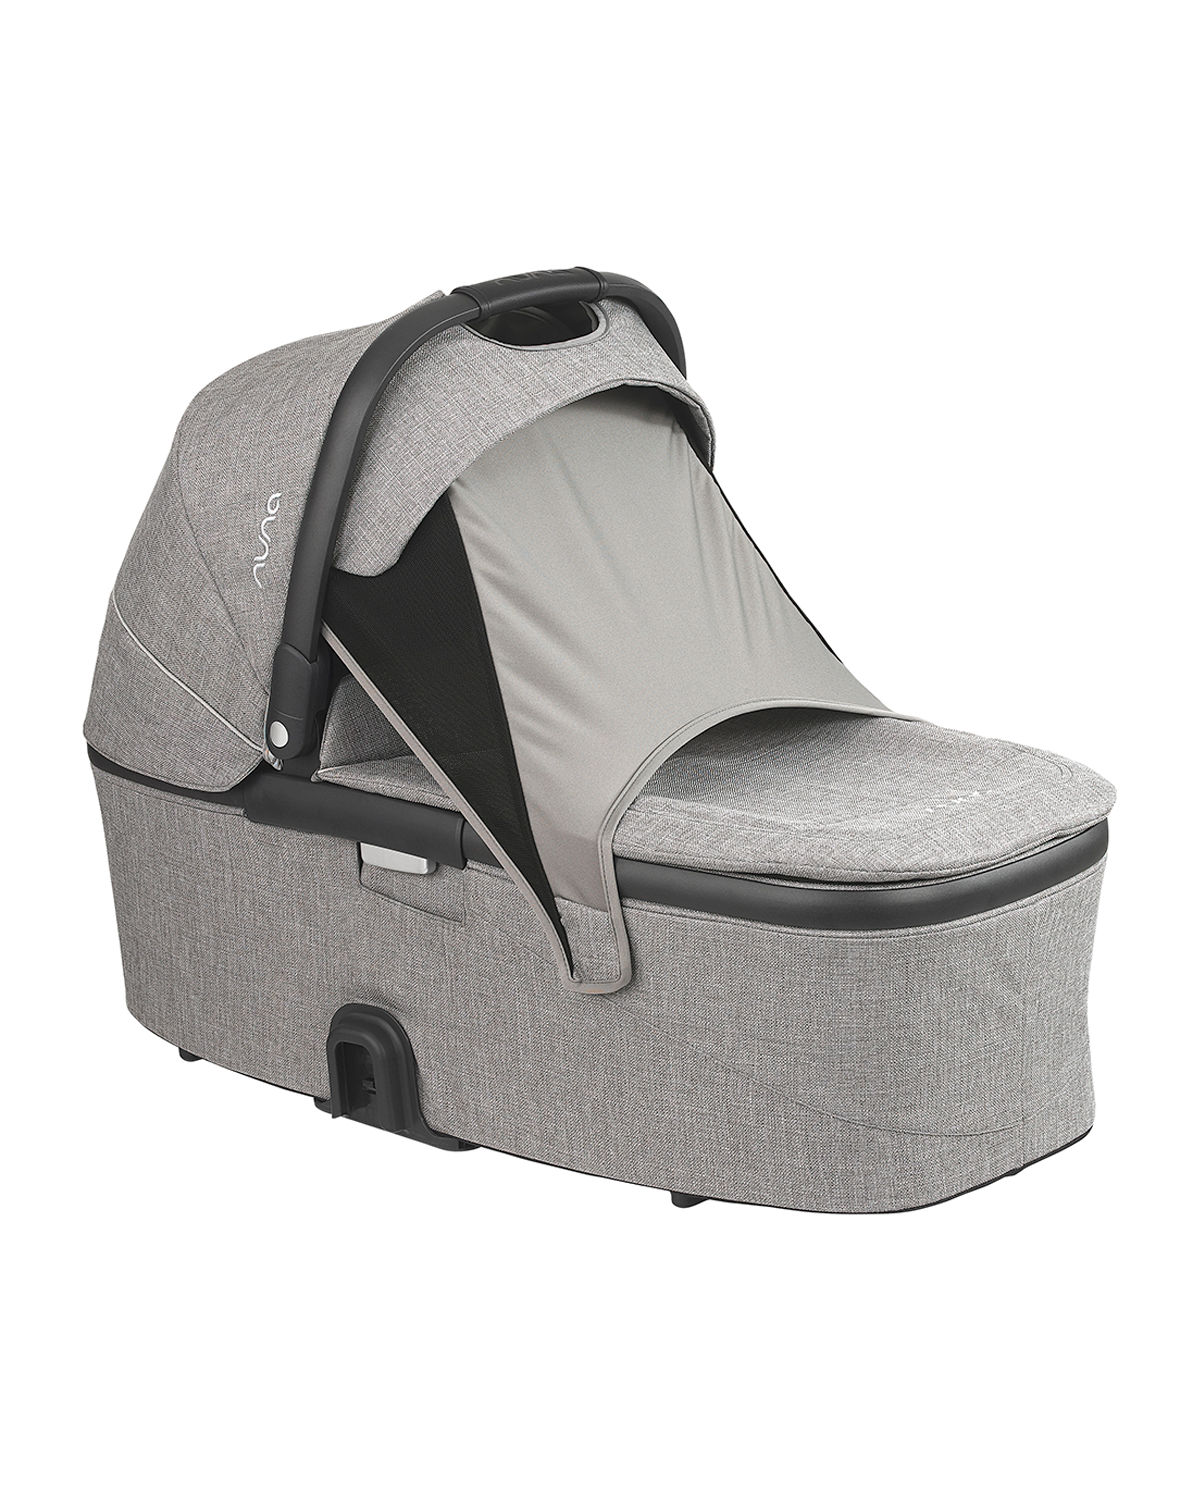 DEMI Grow Stroller Bassinet